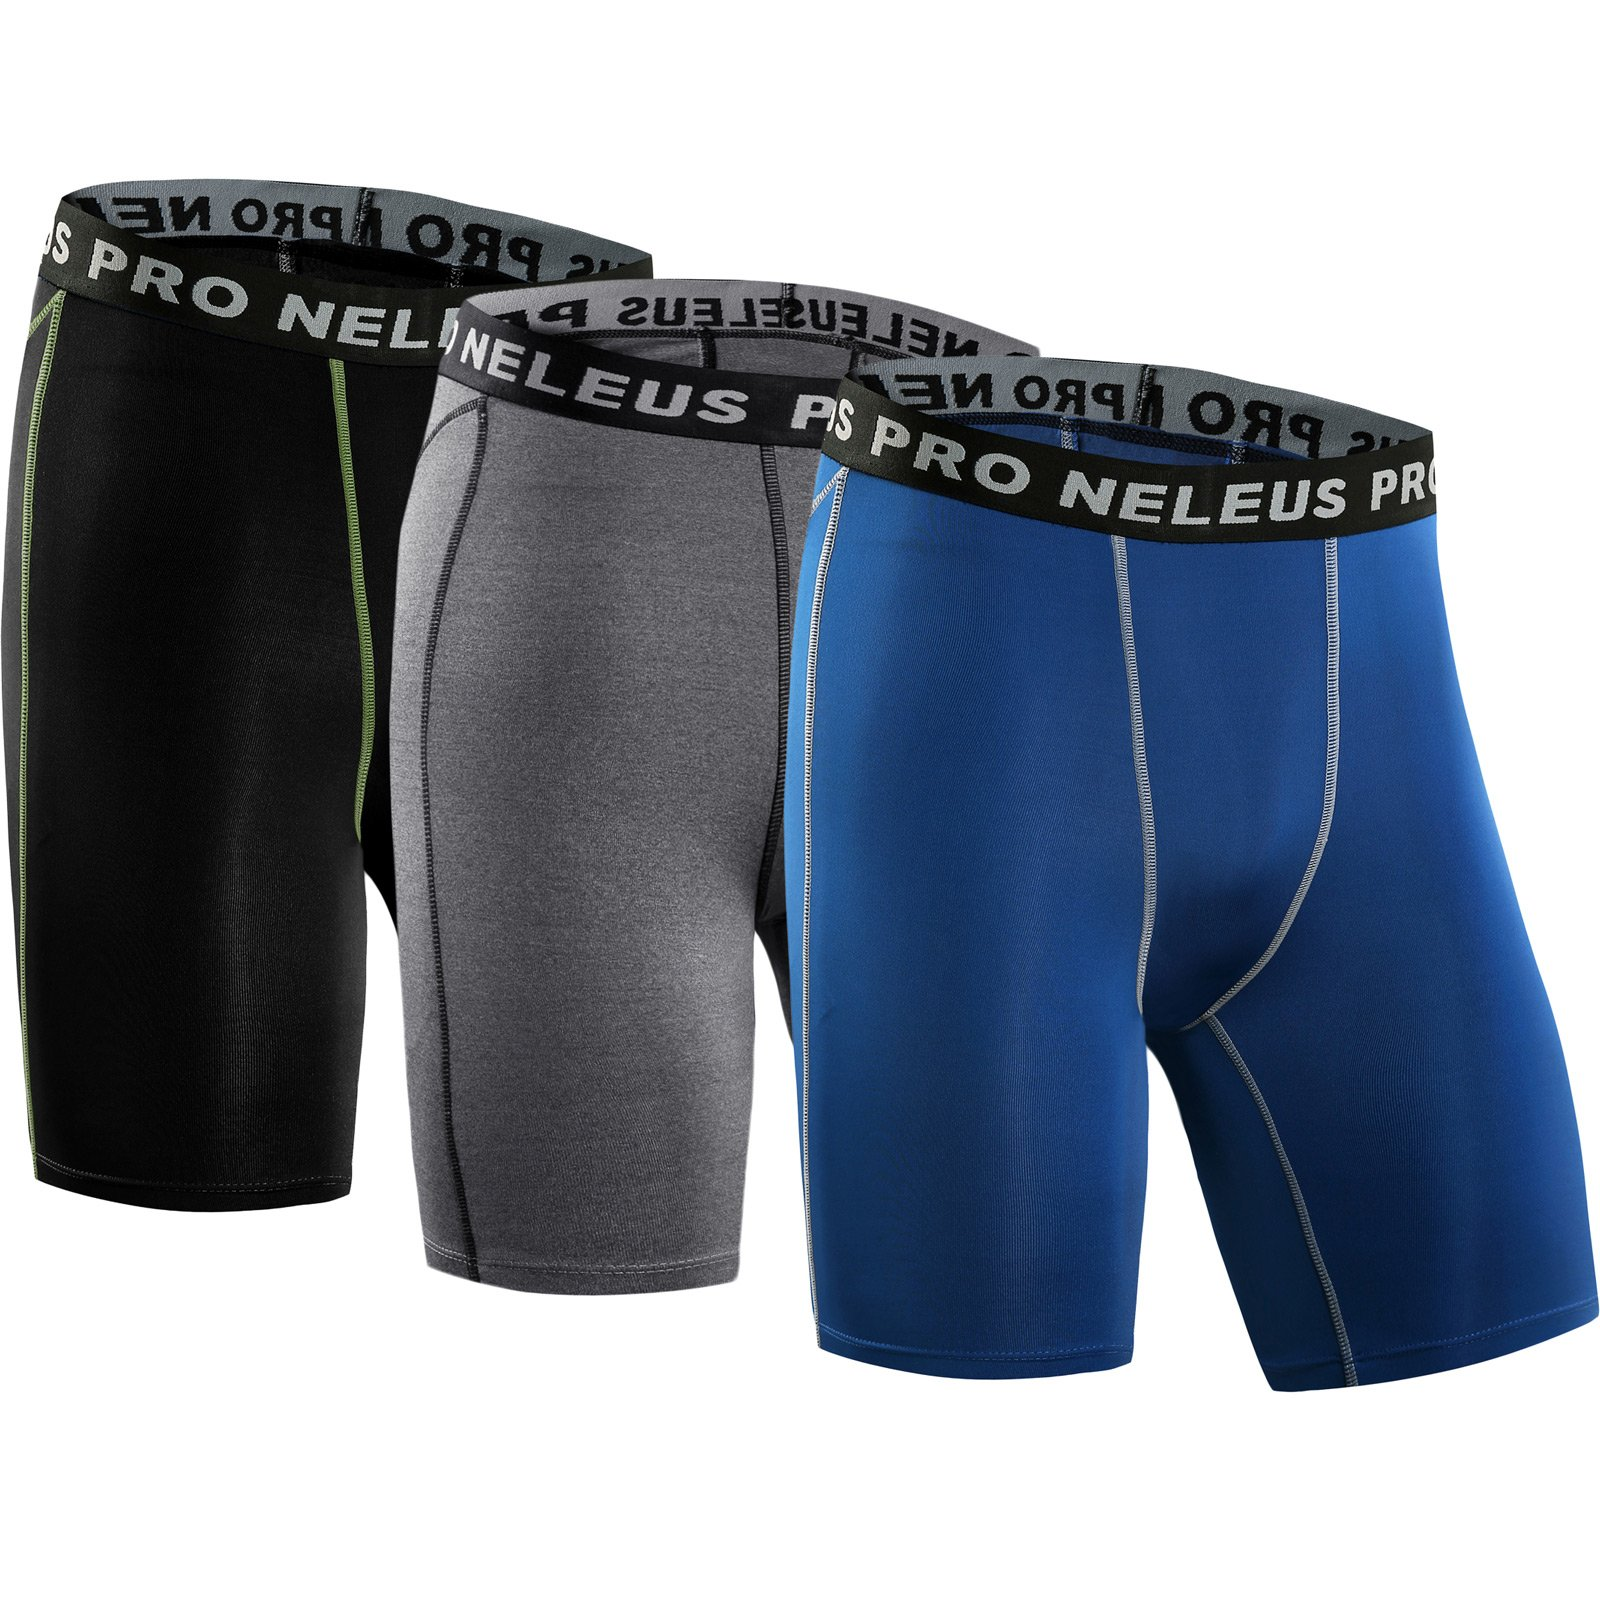 Neleus Men's 3 Pack Compression Short,047,Black,Grey,Blue,US XS,EU S